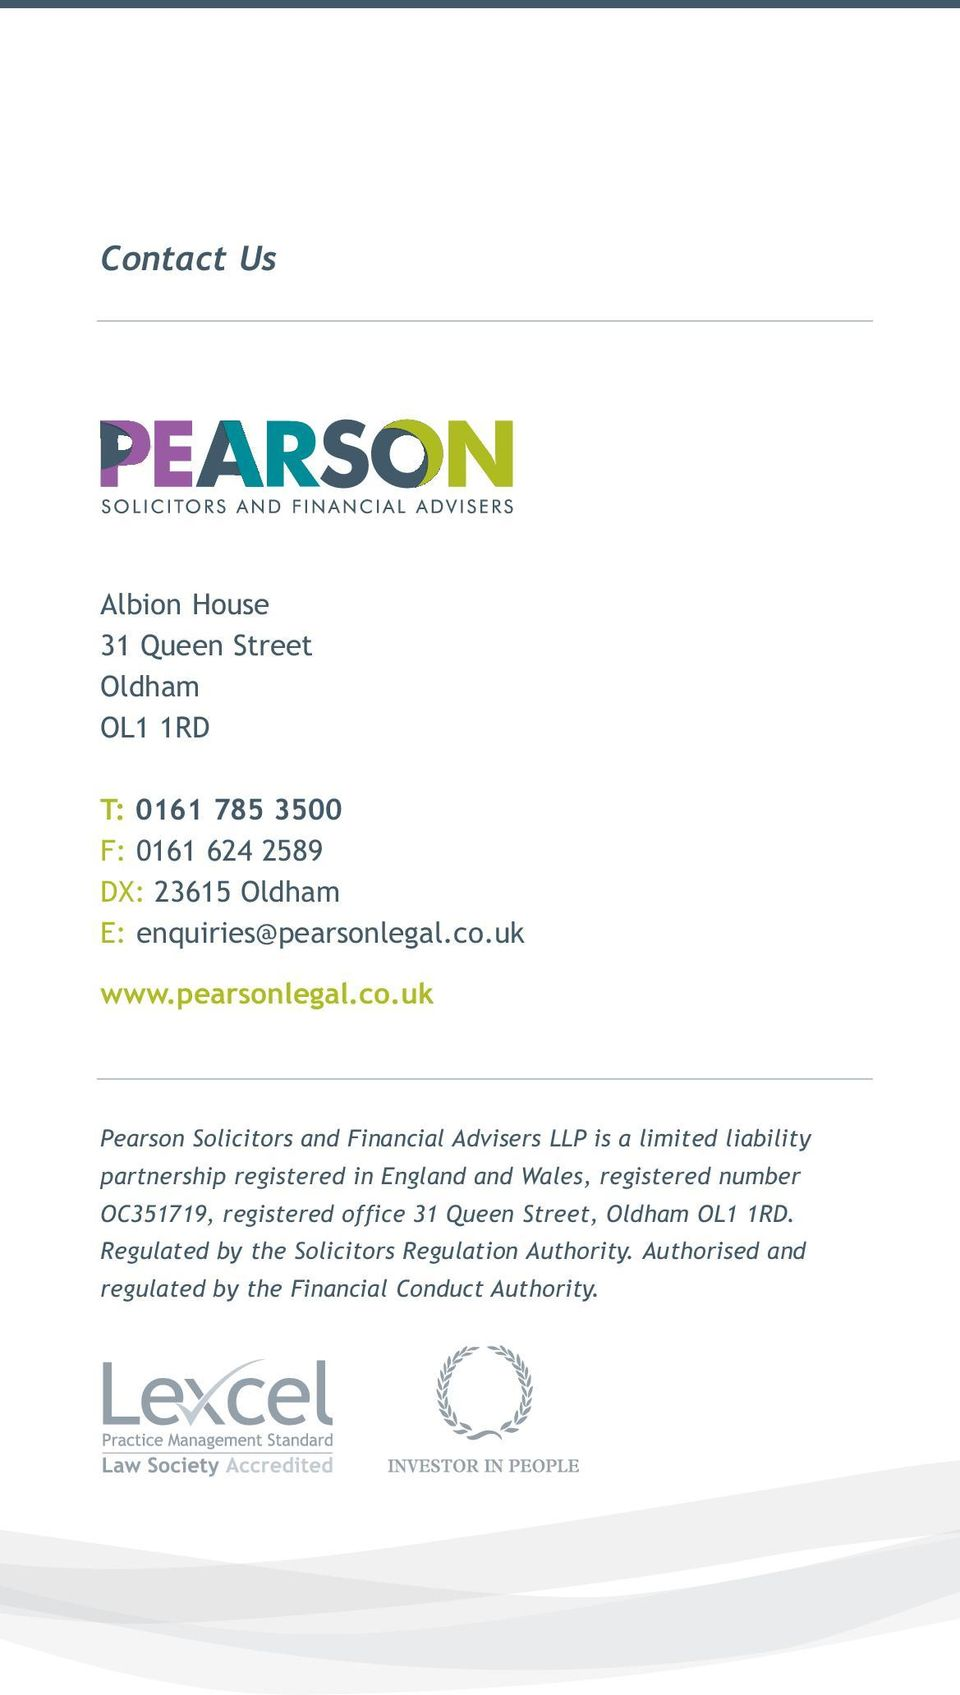 uk www.pearsonlegal.co.